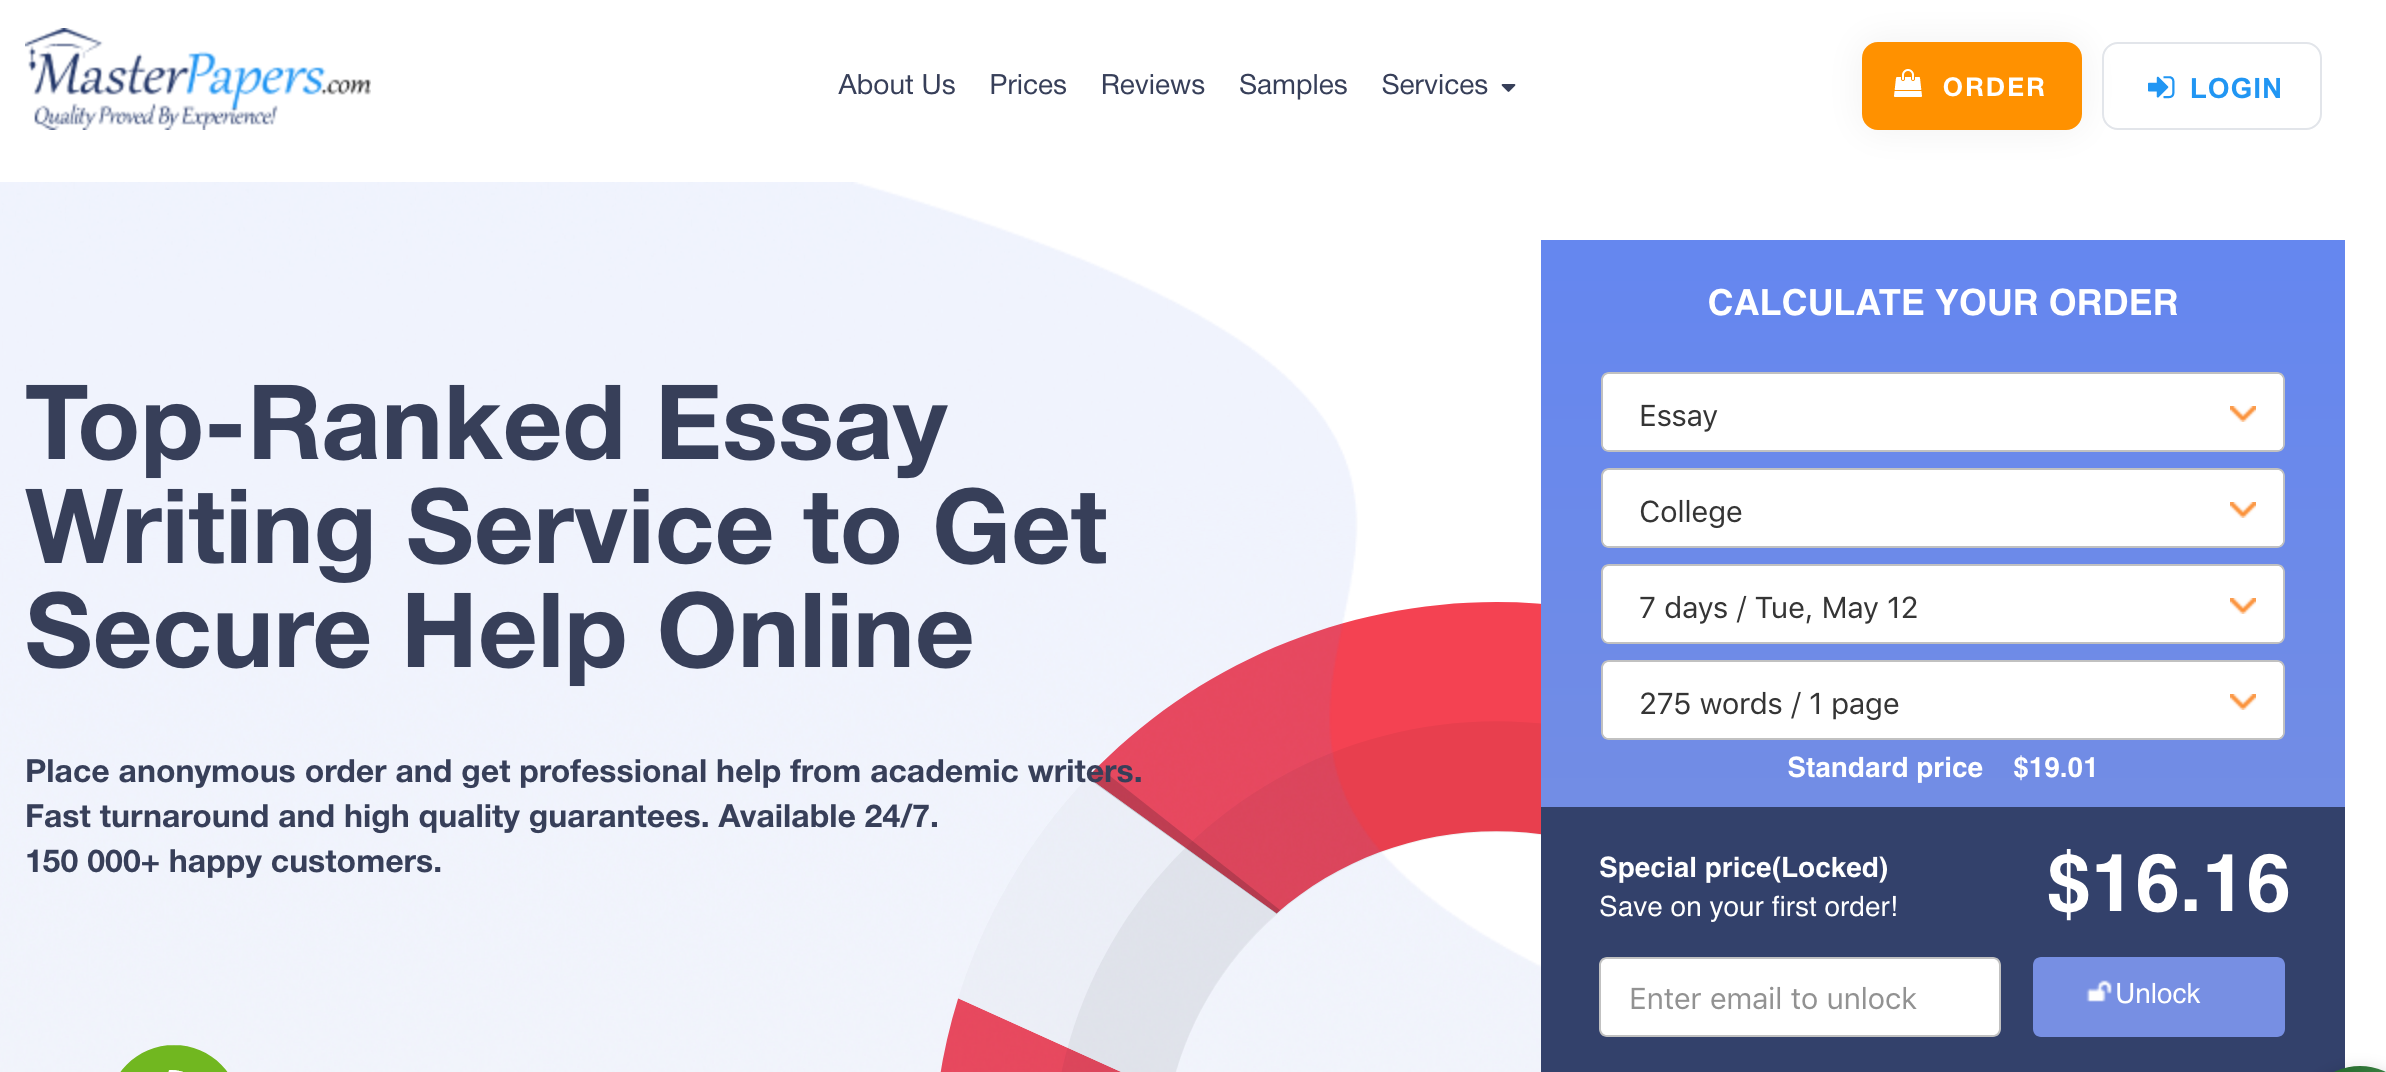 master papers website